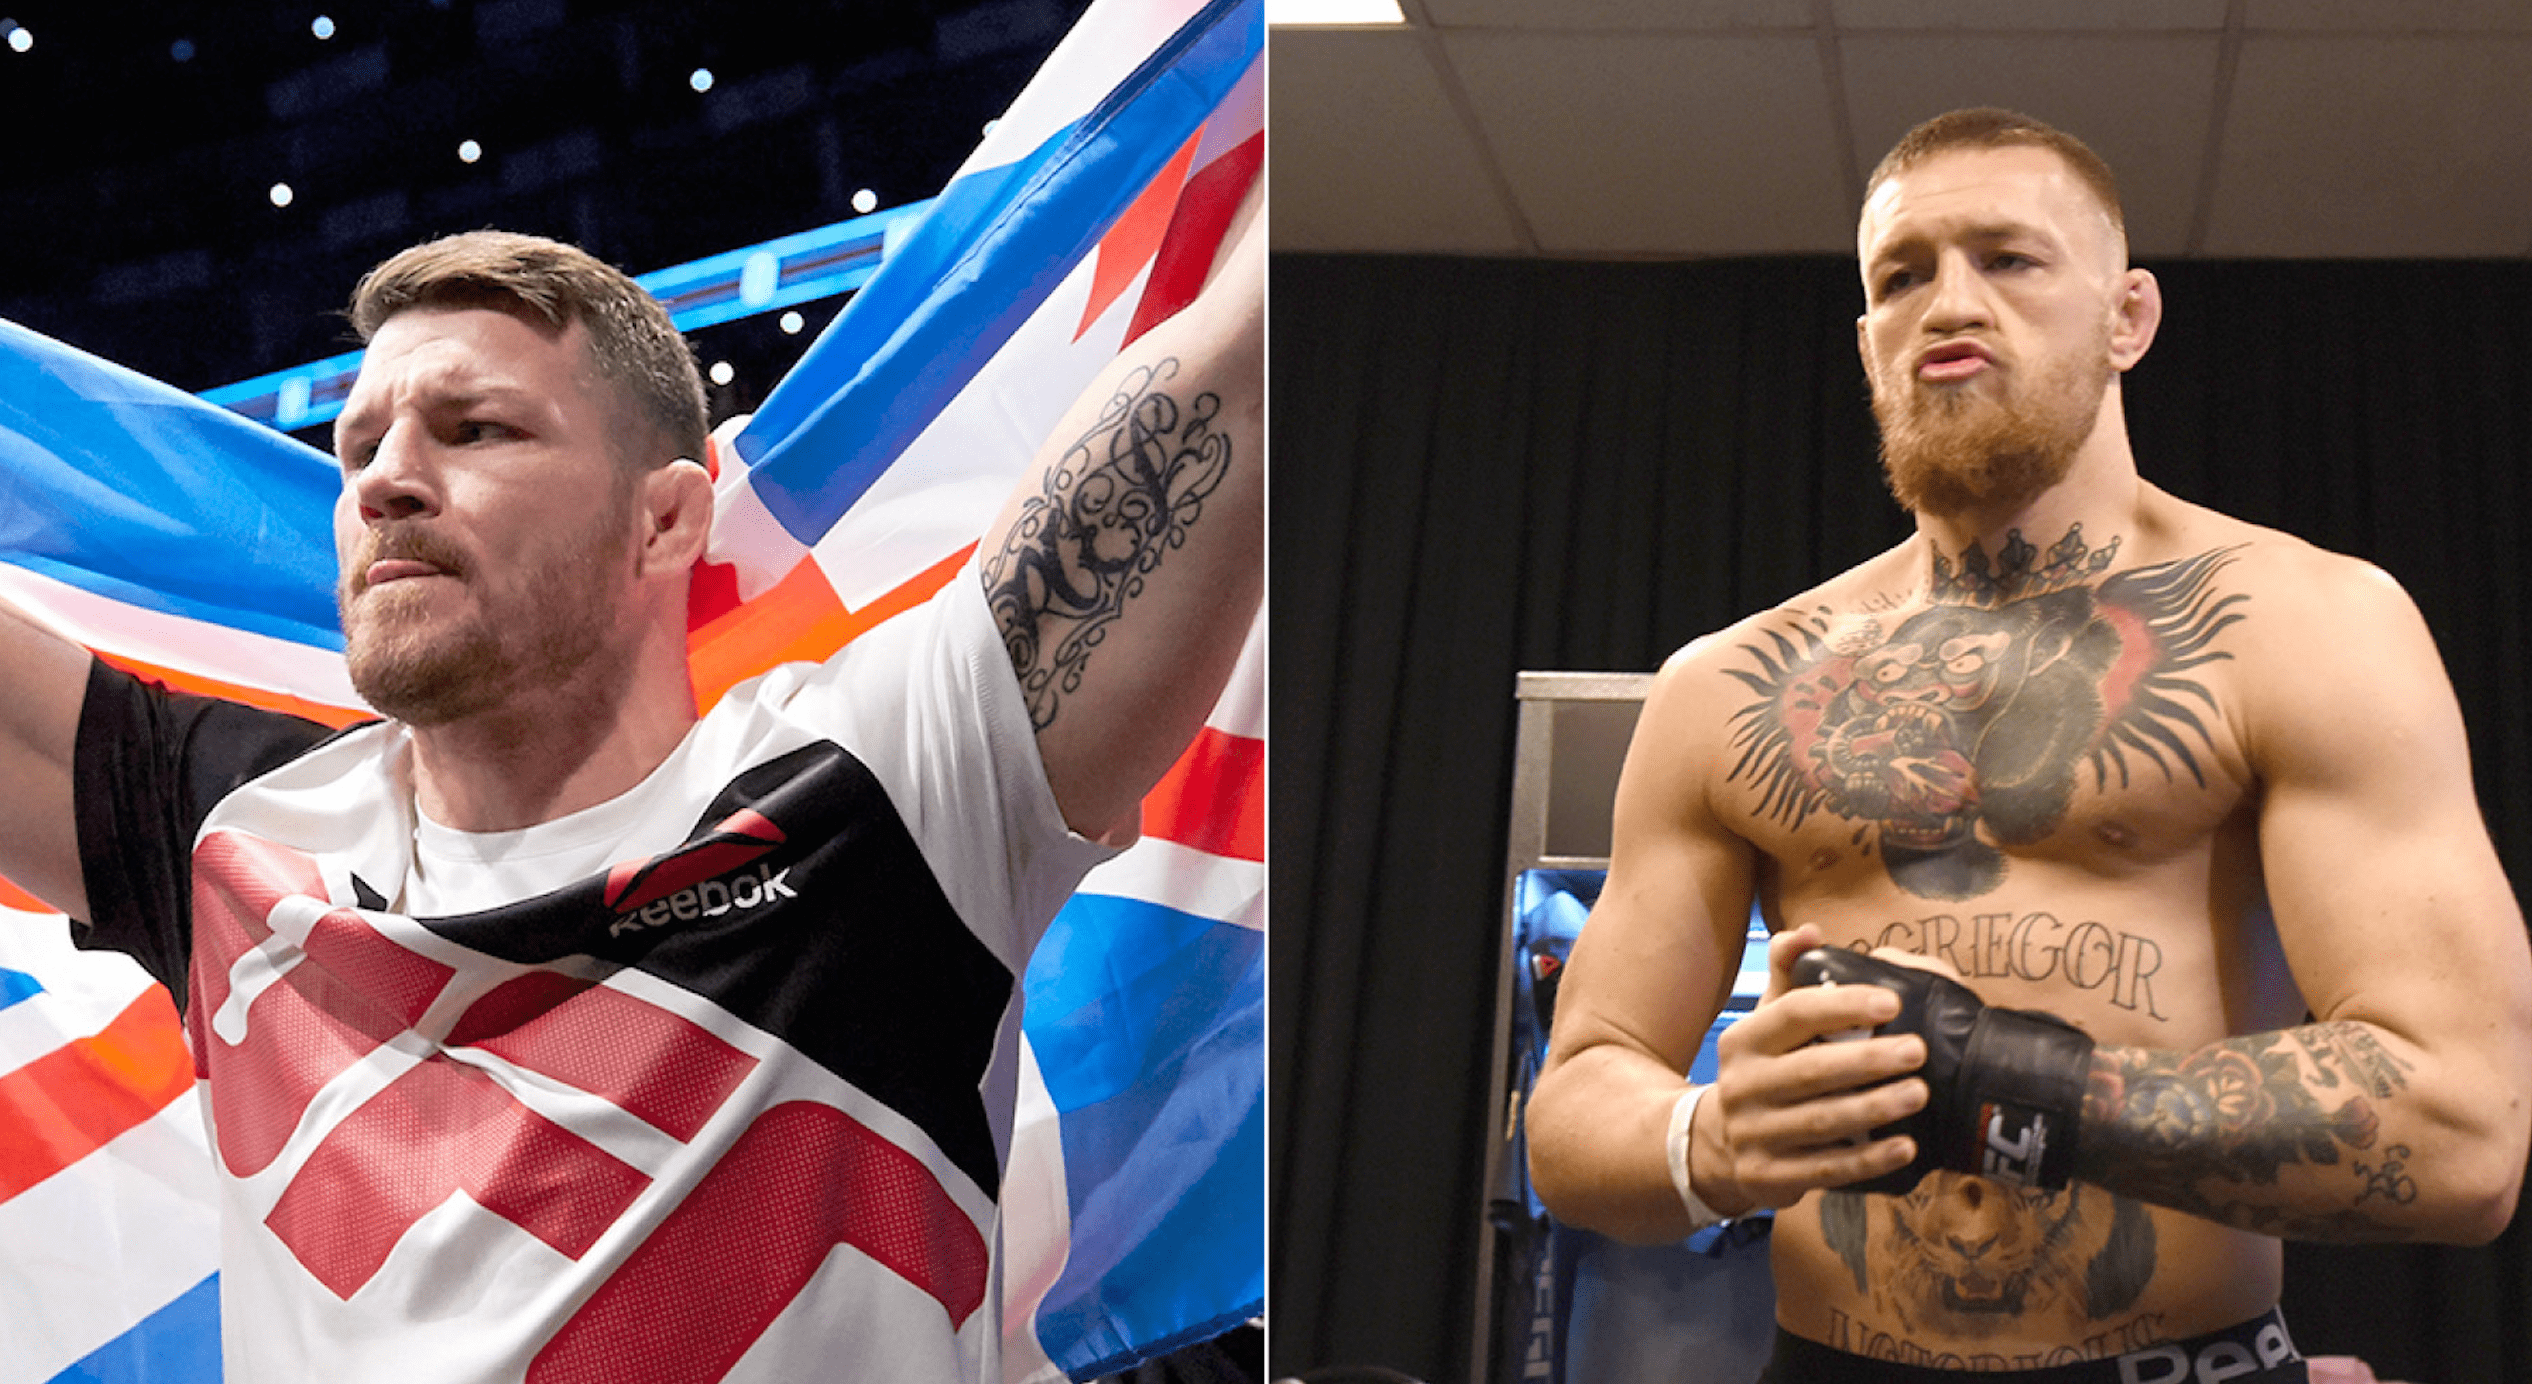 UFC: Bisping On How He'd Beat Adesanya And McGregor's Partying